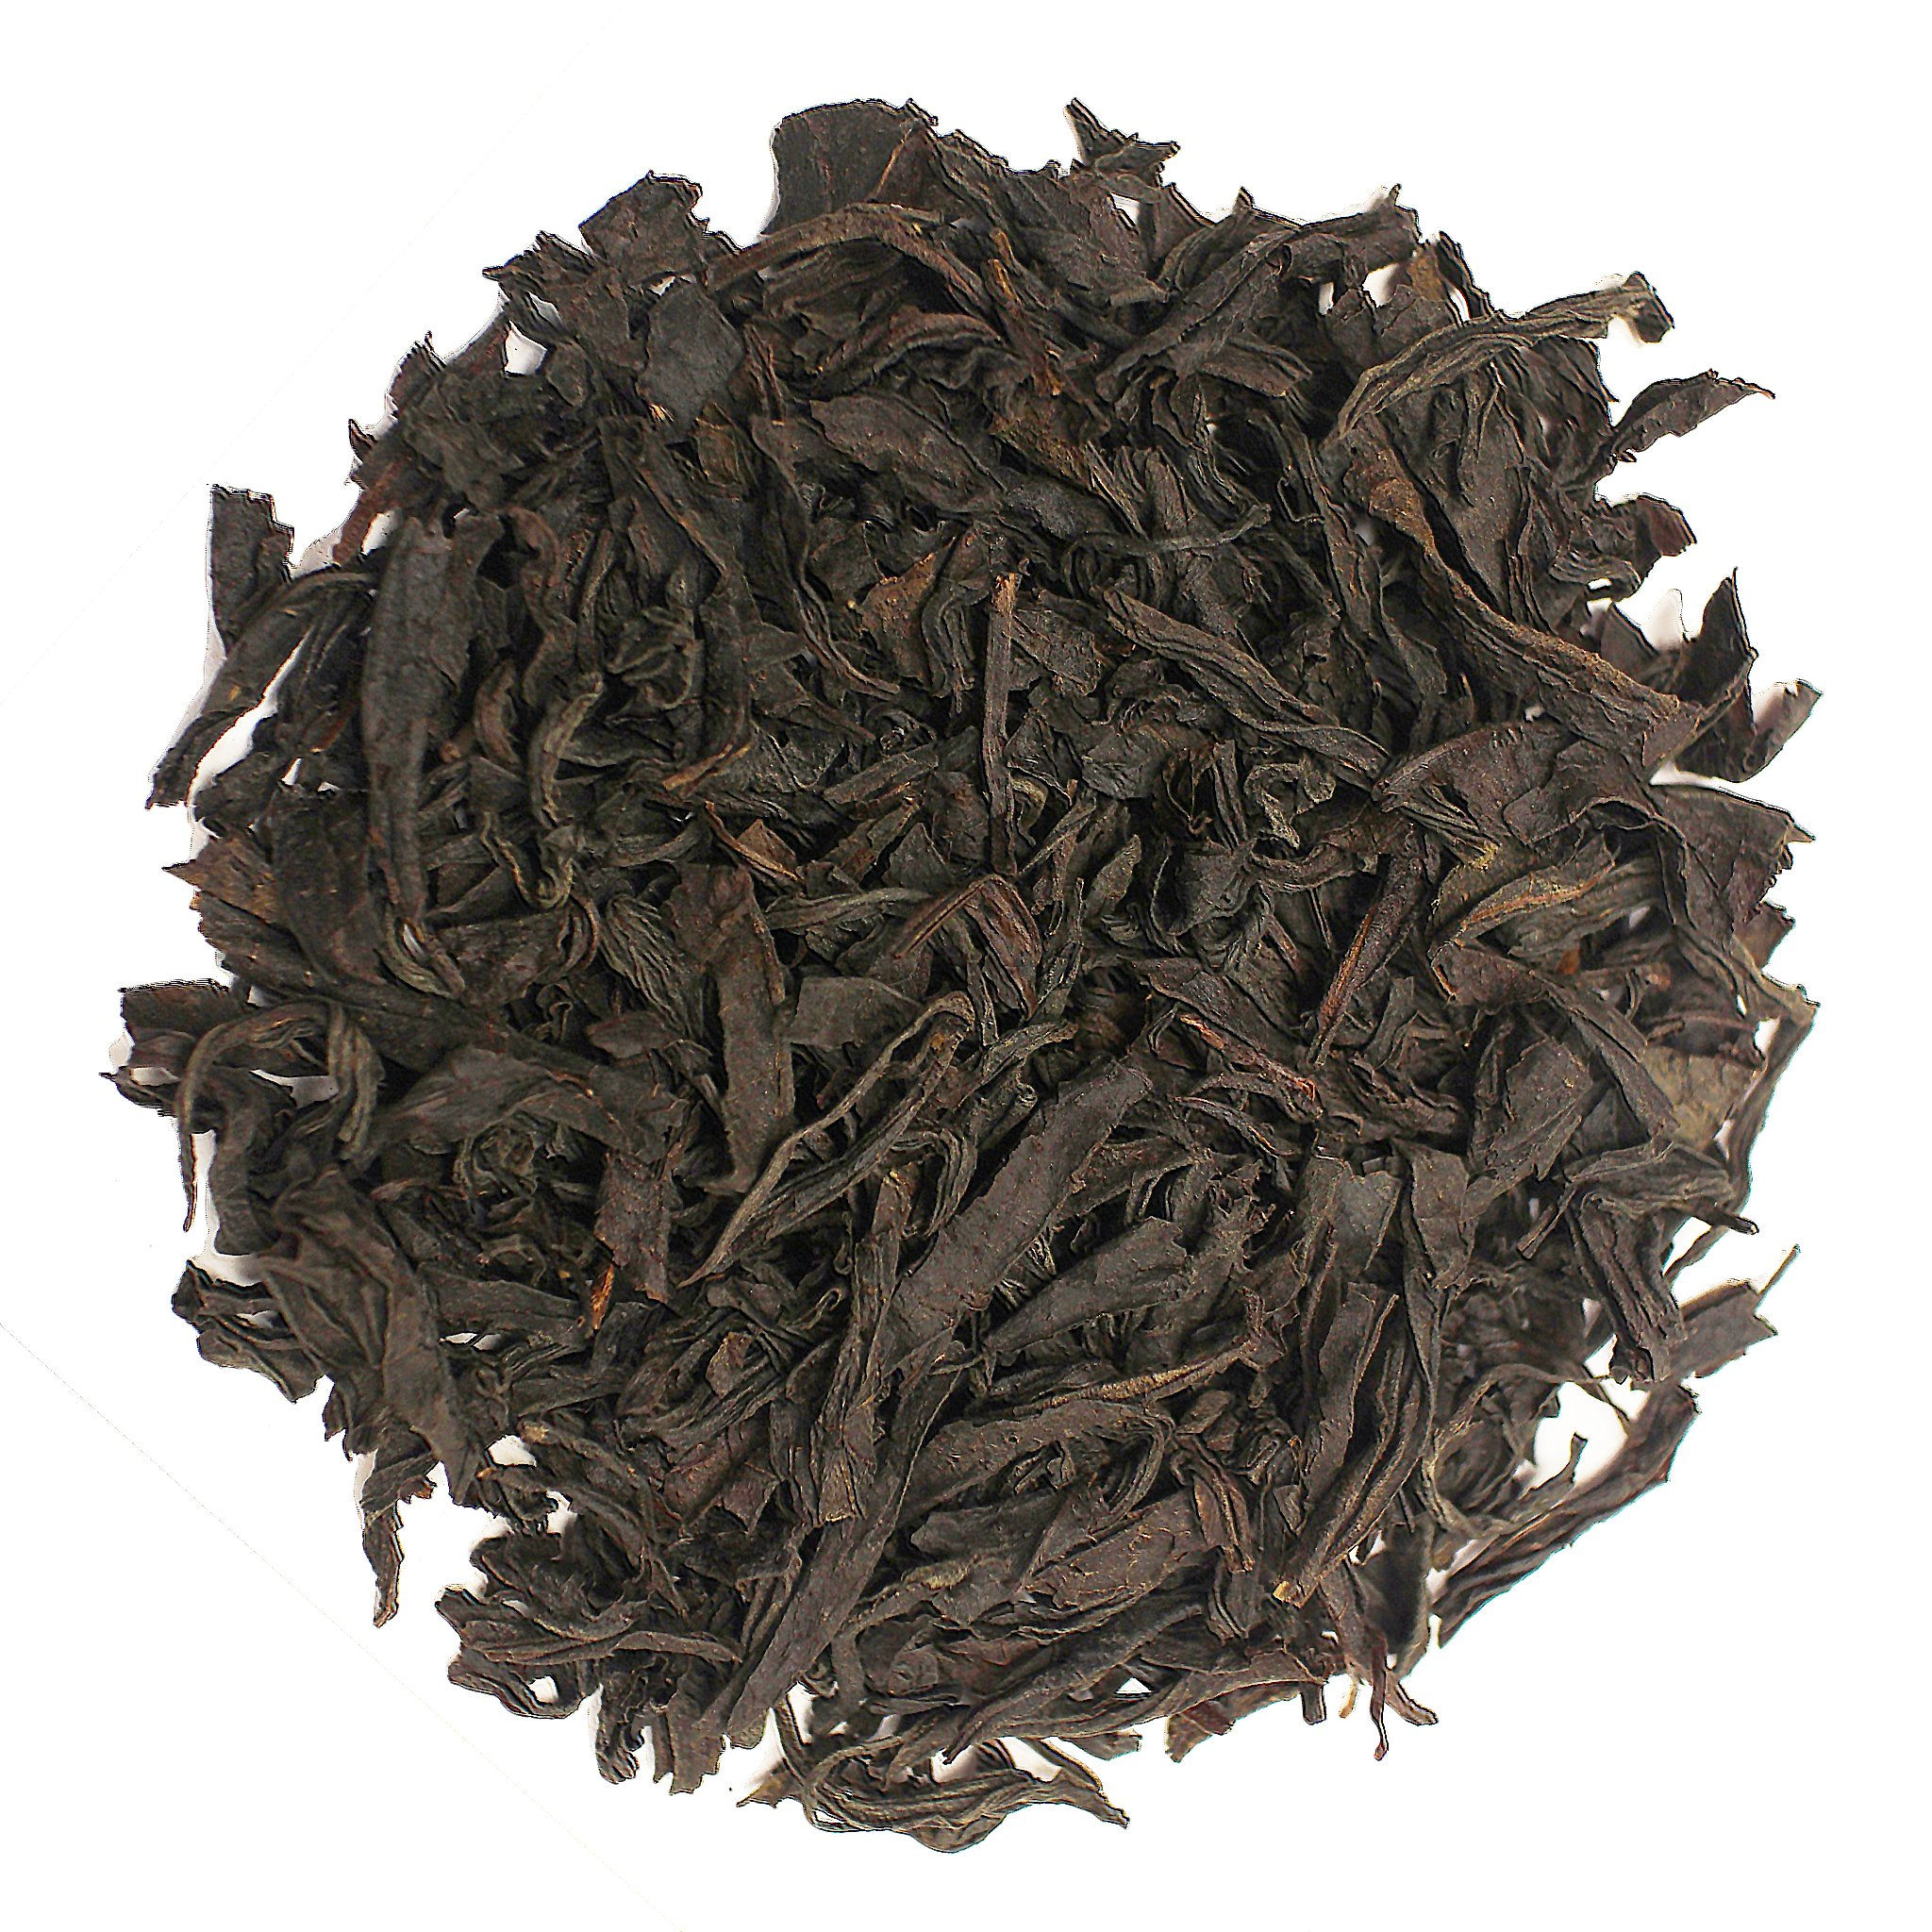 The Tea Farm - Tie Luo Han Oolong Tea - Chinese Loose Leaf Oolong Tea (8 Ounce Bag) by The Tea Farm